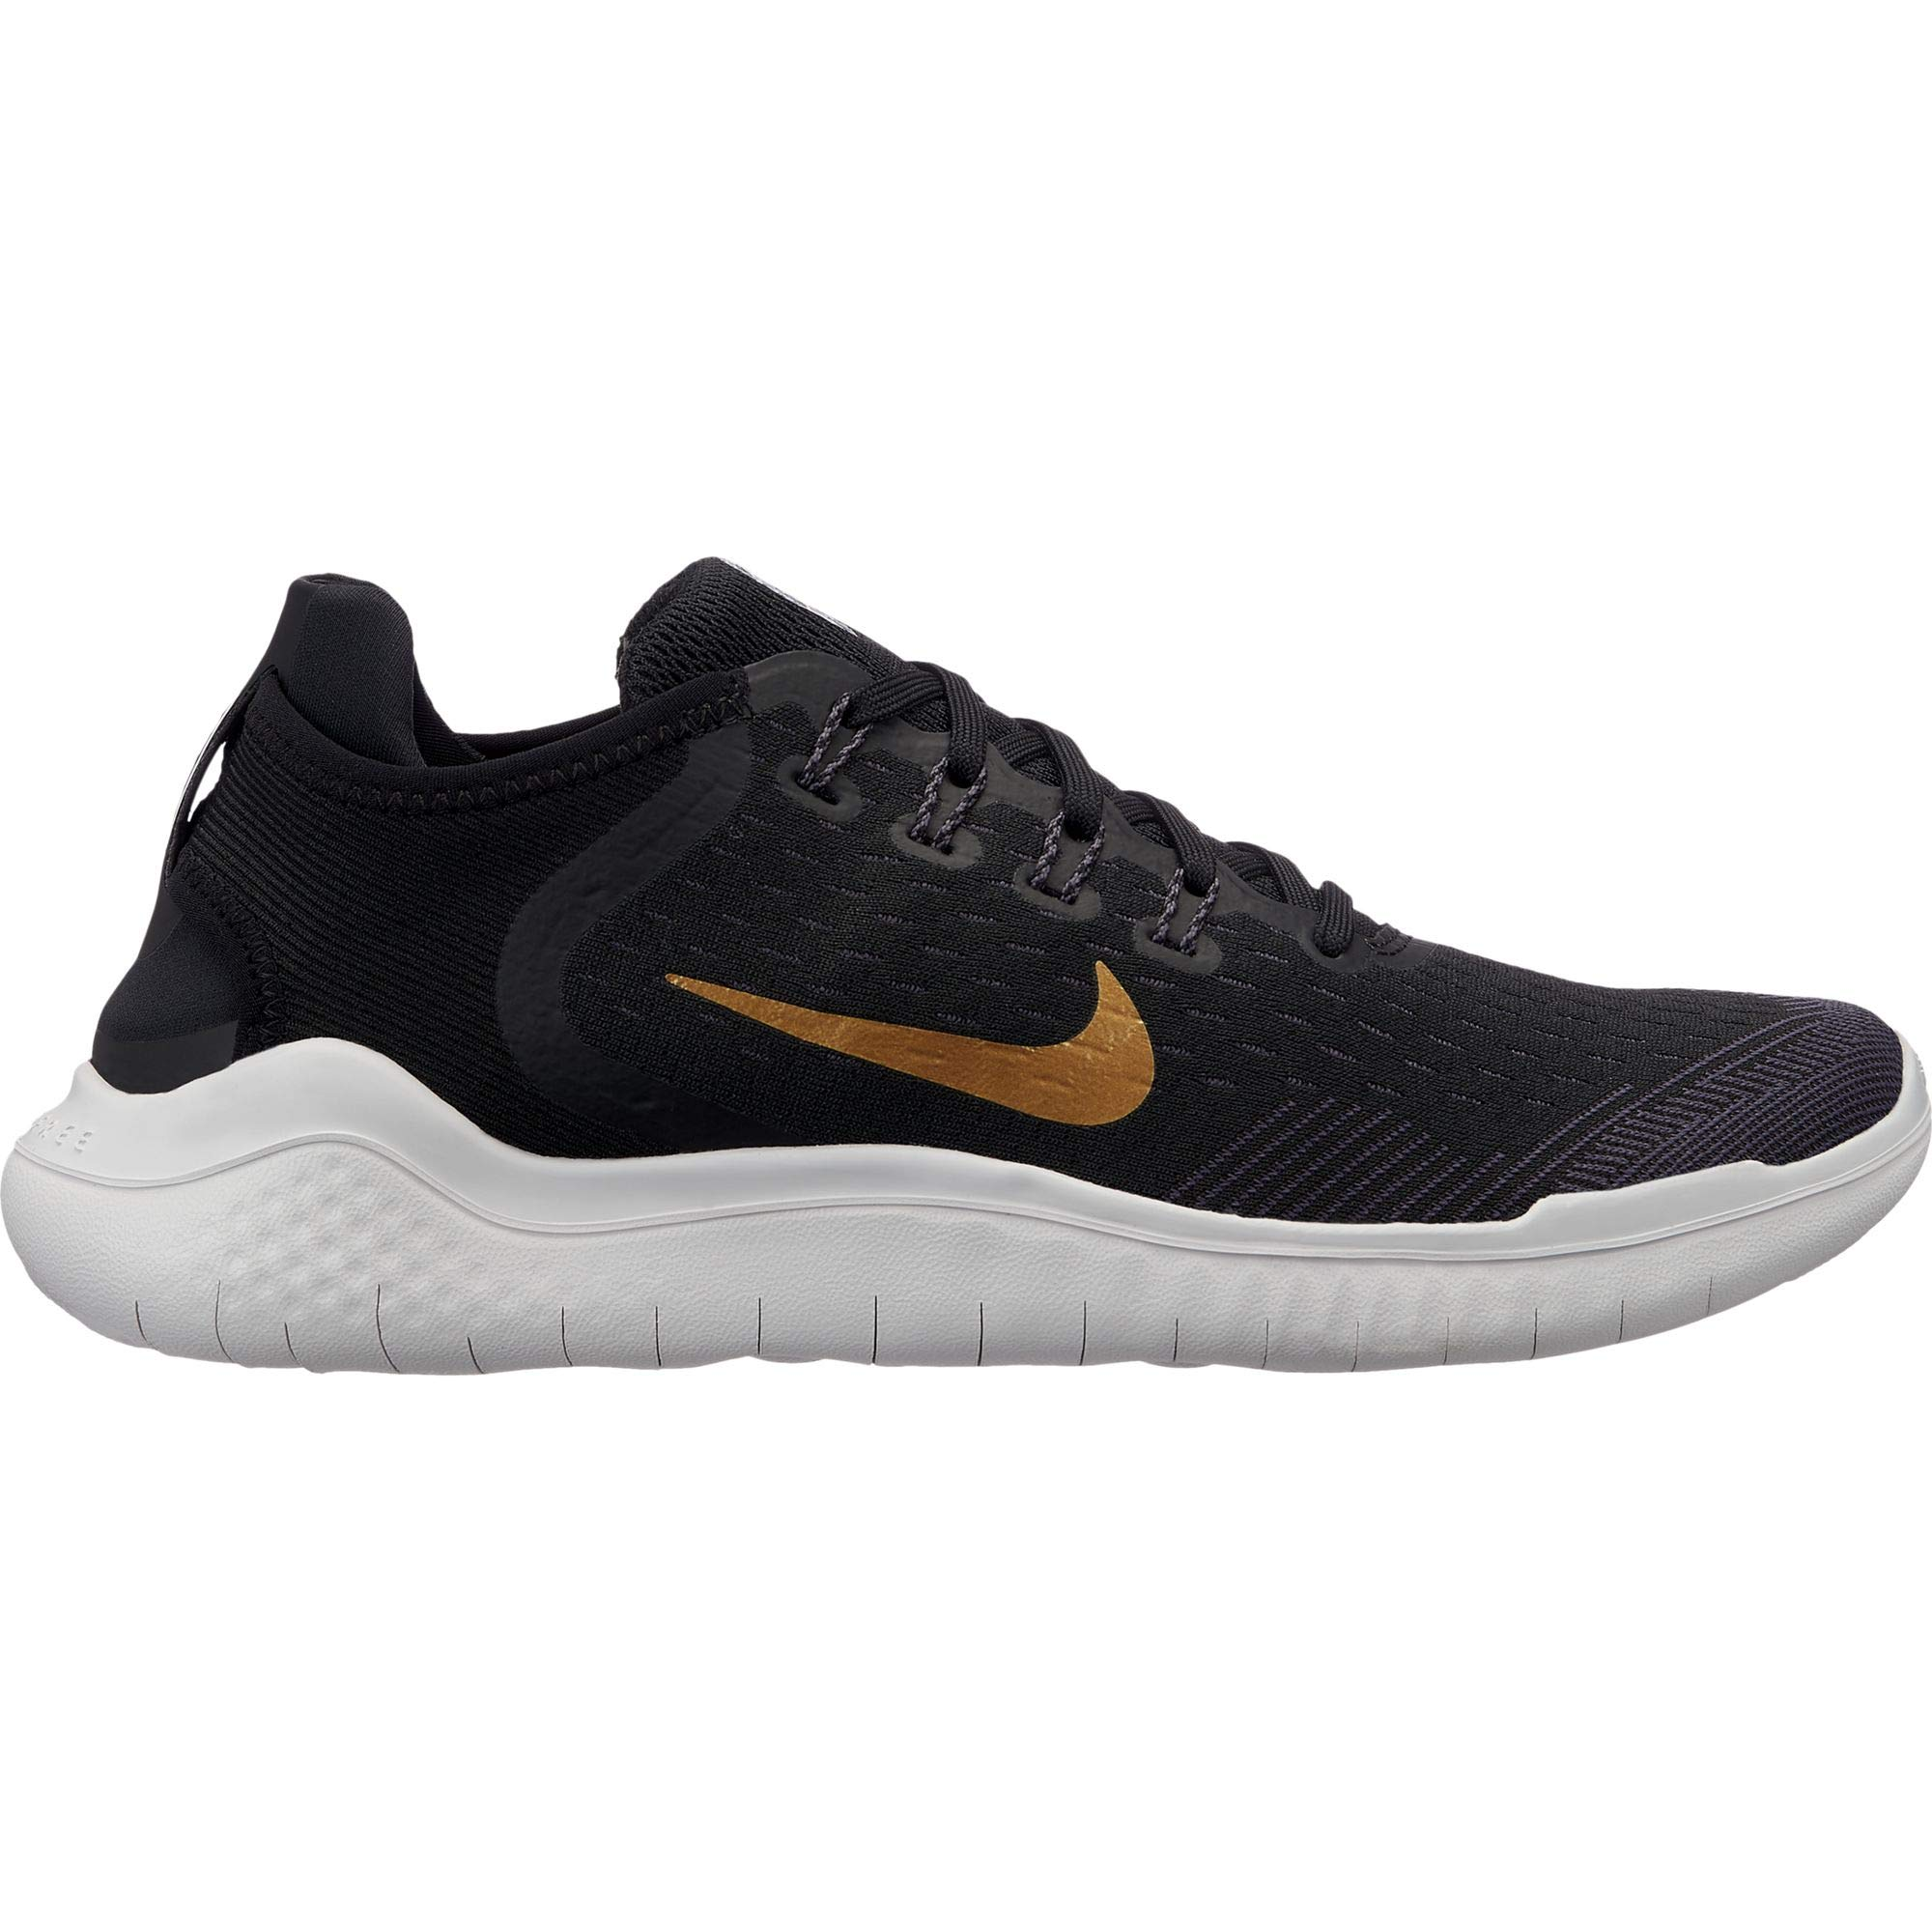 8c4e0c79bed6 Galleon - Nike Women s Free RN 2018 Running Shoe (8.5 M US